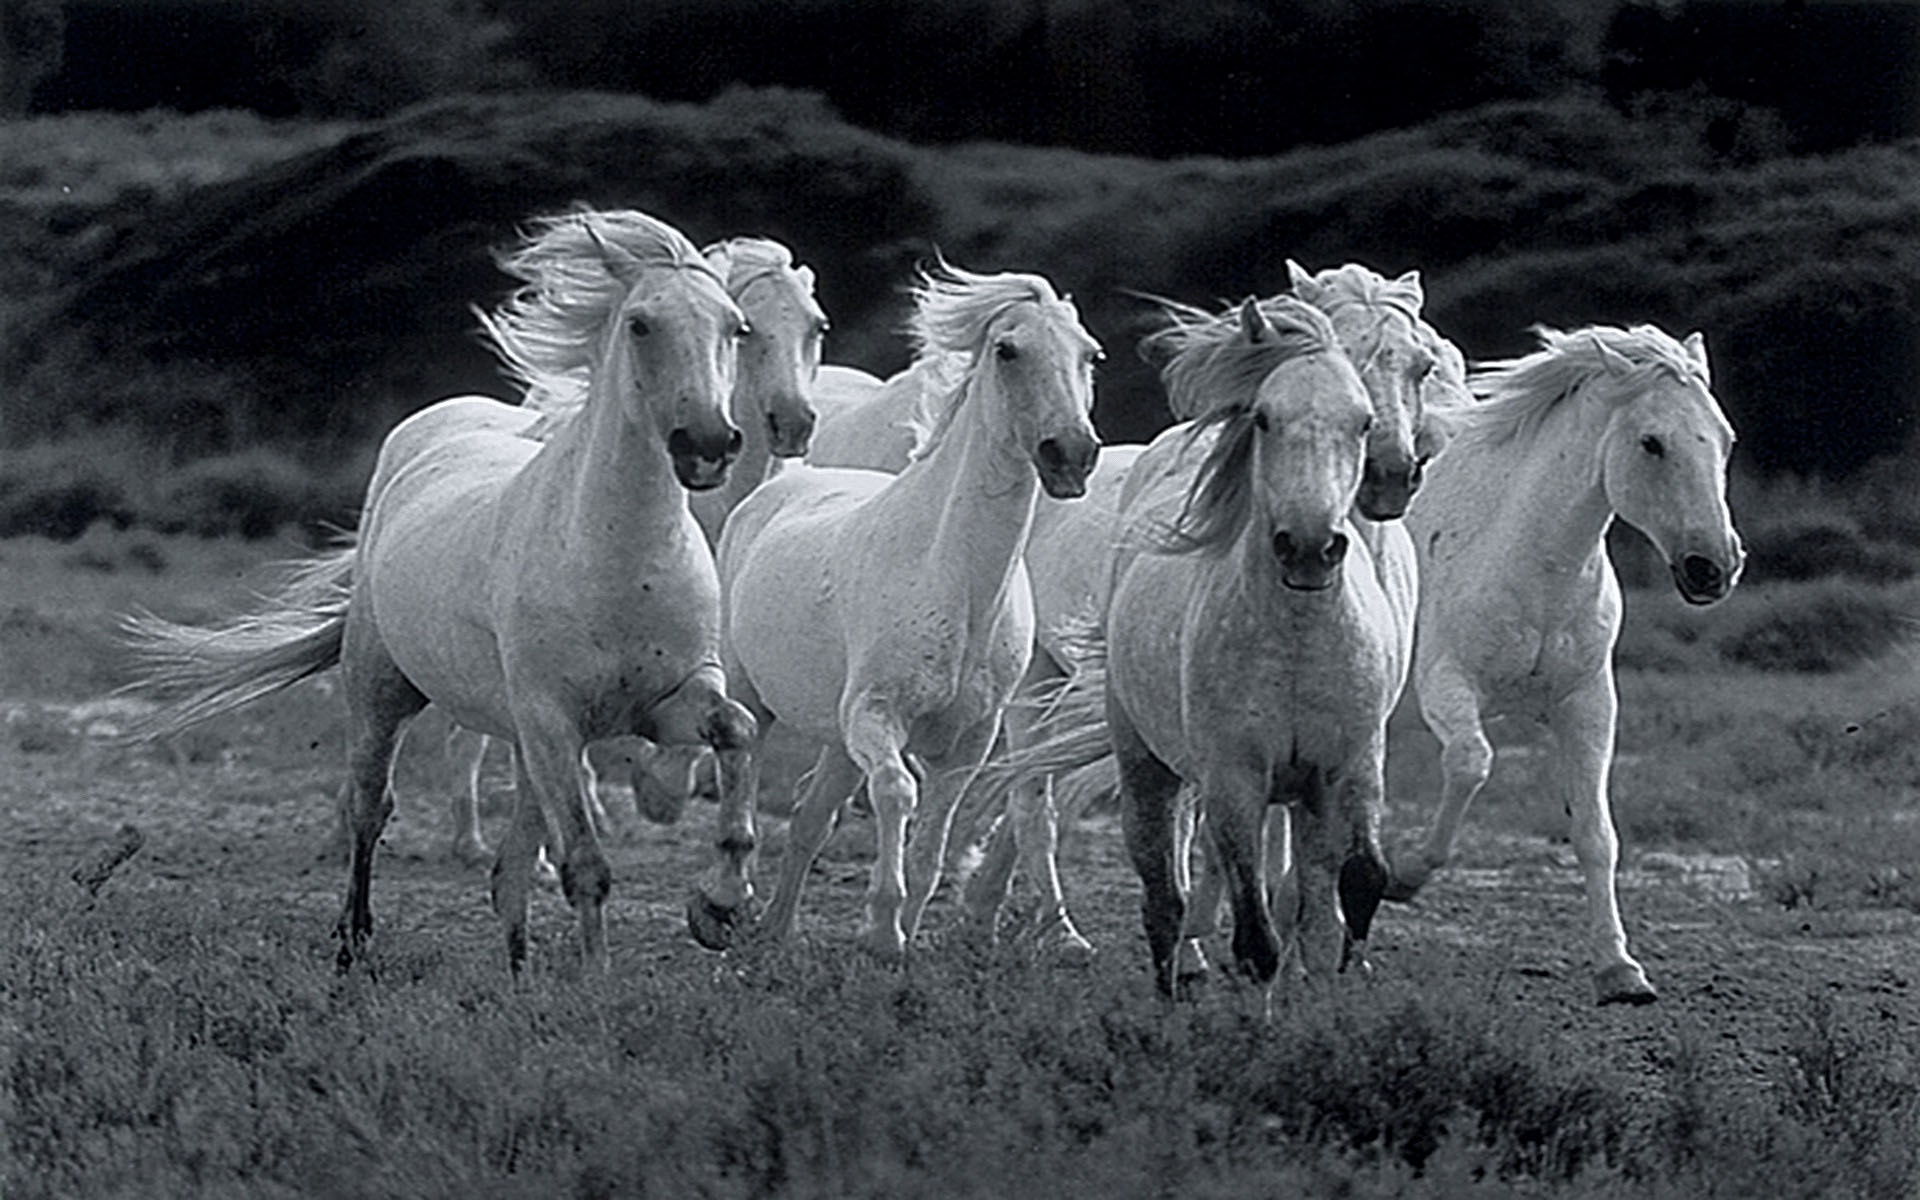 All The Pretty Horses Movie Wallpapers 894927 Seven Running White Horses 1893710 Hd Wallpaper Backgrounds Download